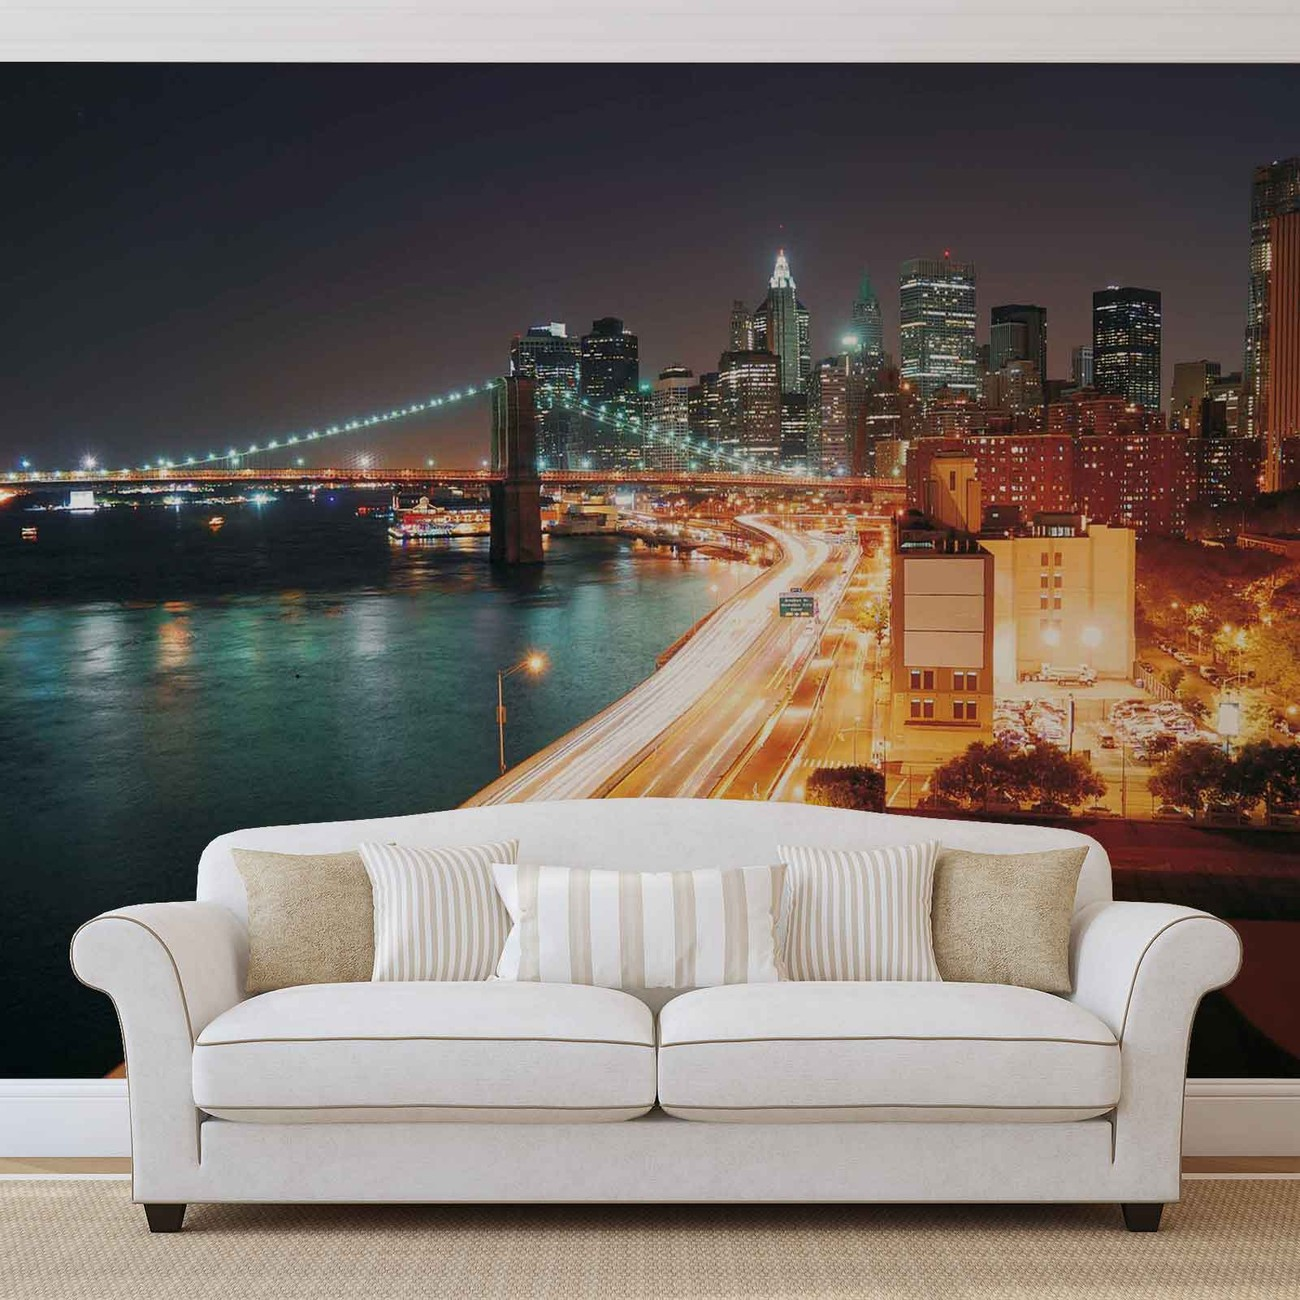 New york city skyline night wall paper mural buy at for City skyline wall mural